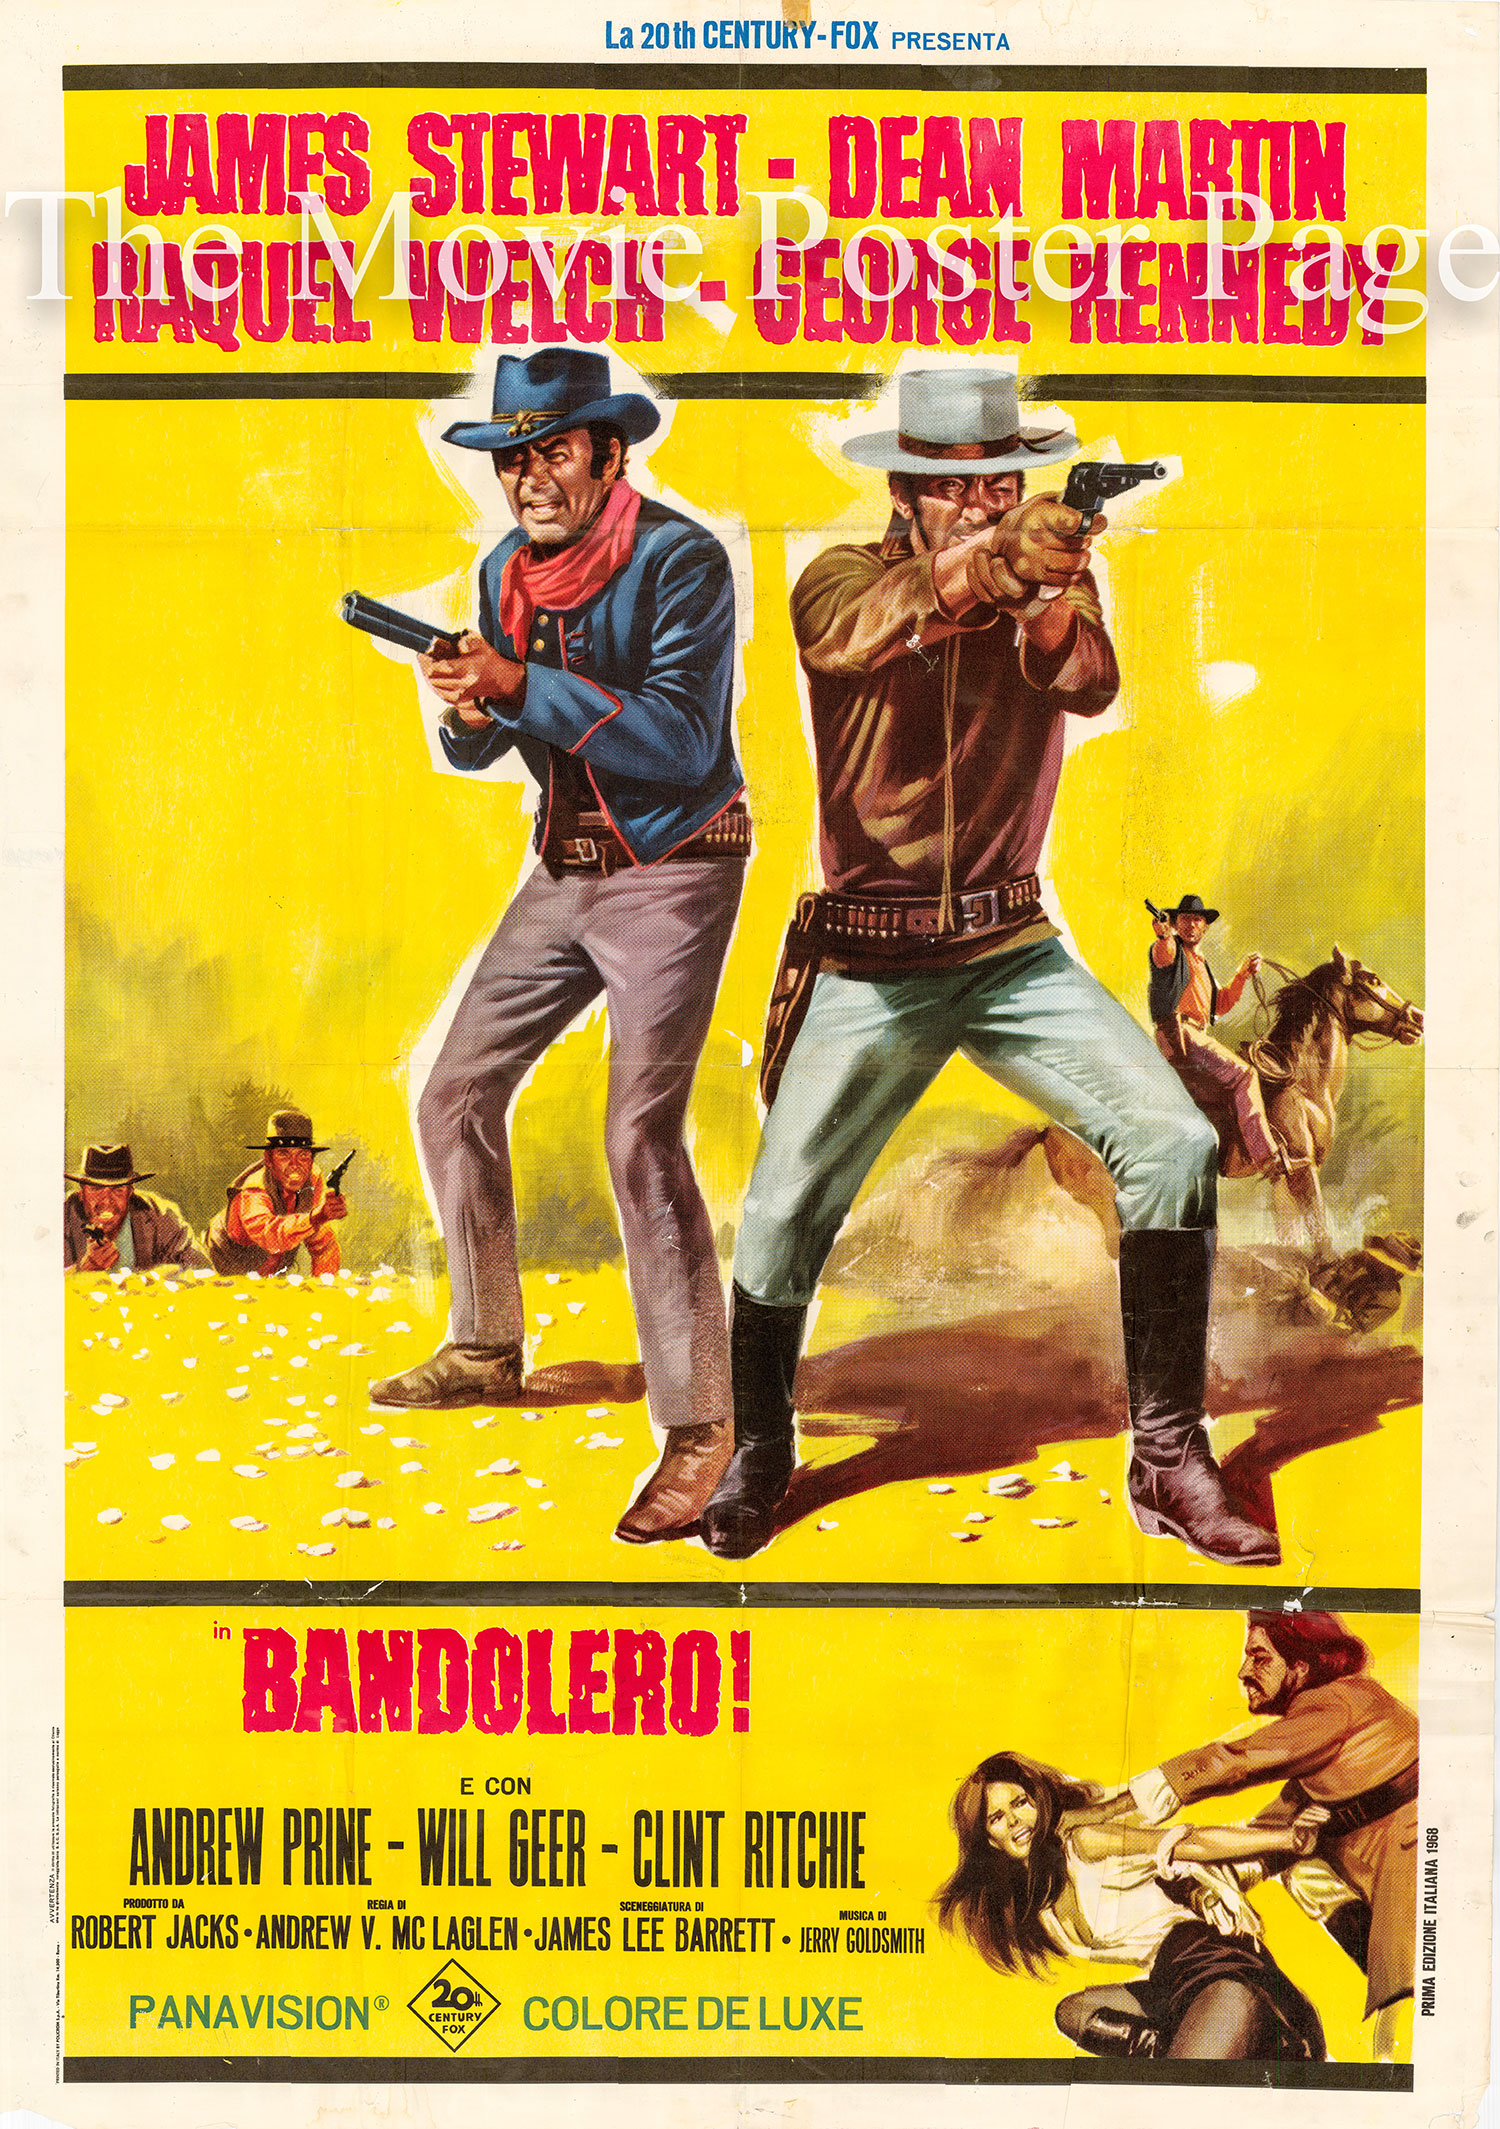 Pictured is an Italian two-sheet poster for the 1968 Andrew V. McLaglen film Bandolero starring Dean Martin and James Stewart.